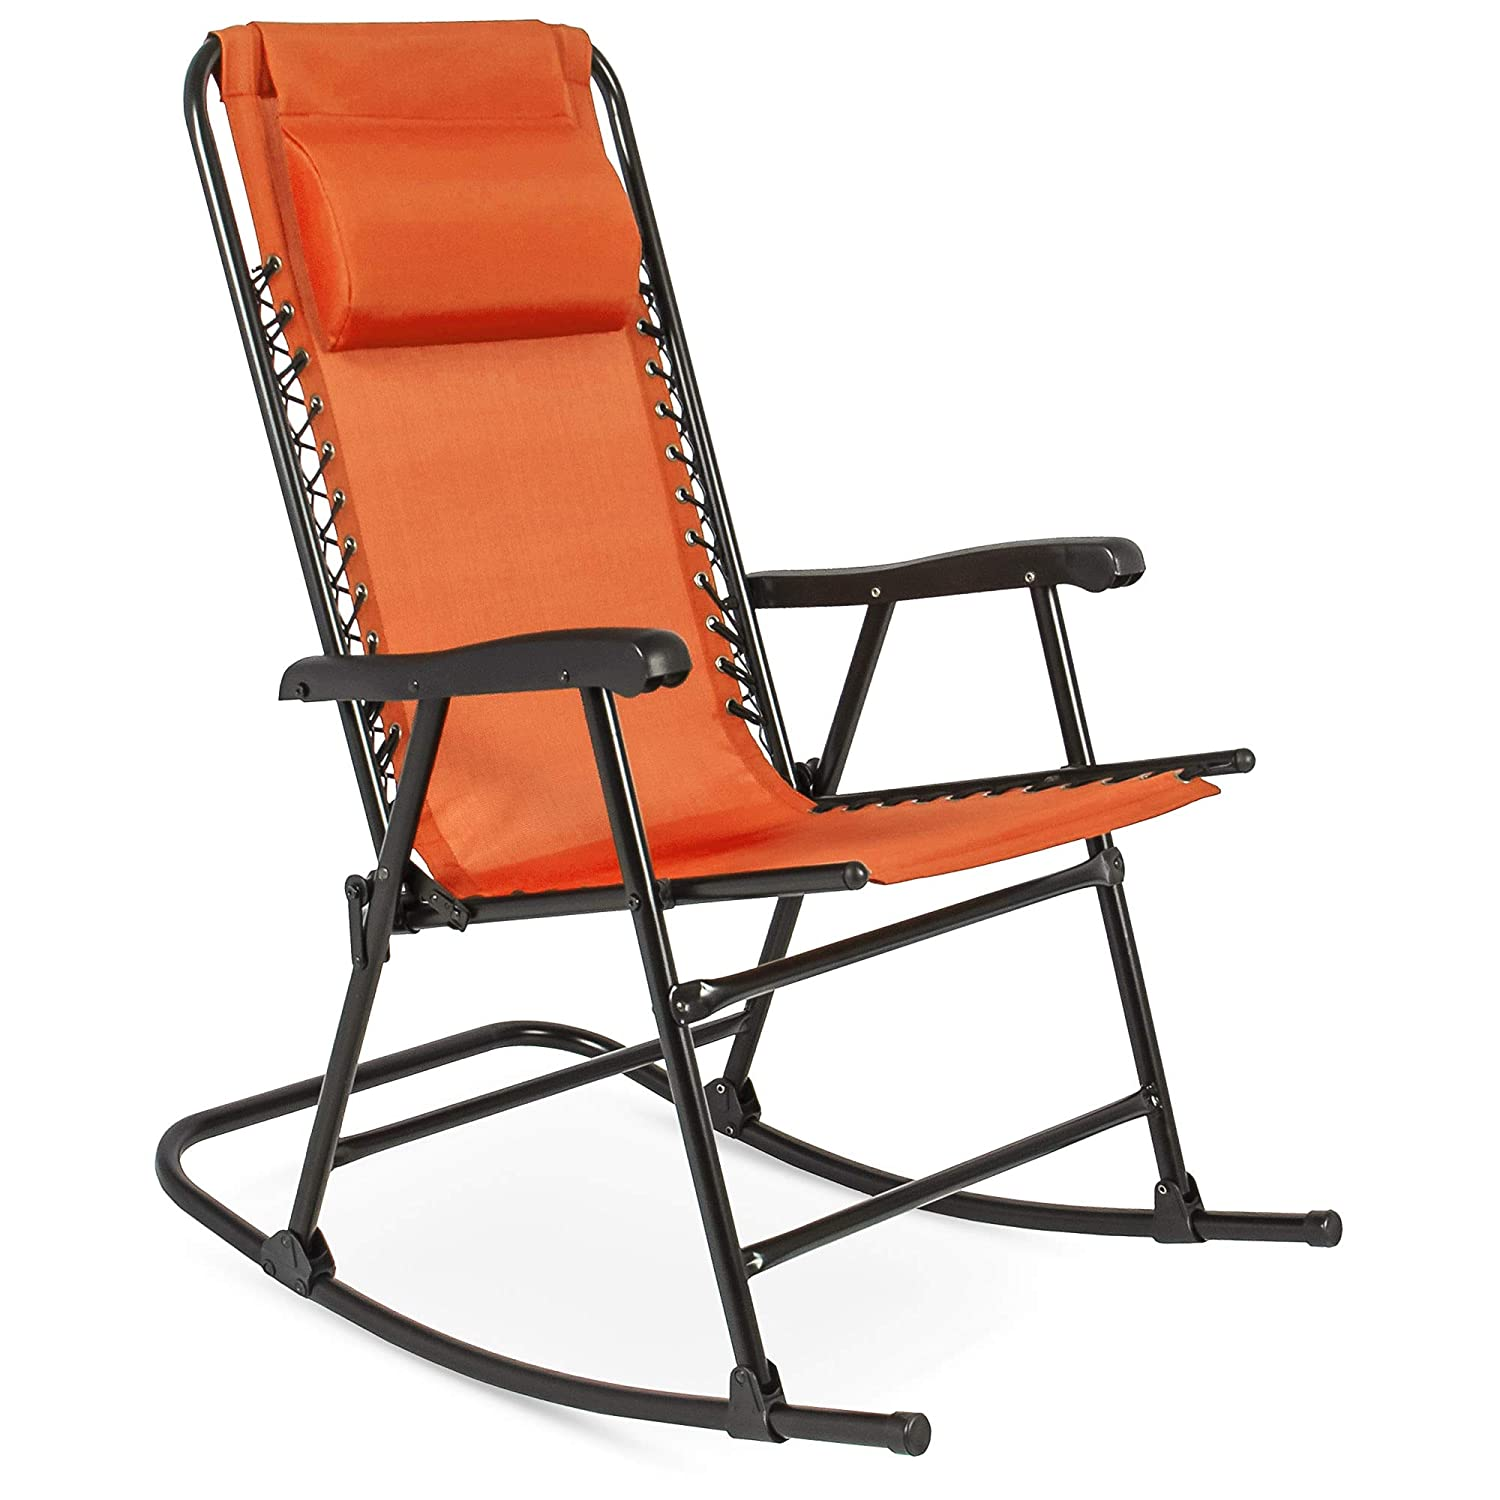 Sensational Best Choice Products Foldable Zero Gravity Rocking Patio Recliner Chair Orange Gamerscity Chair Design For Home Gamerscityorg